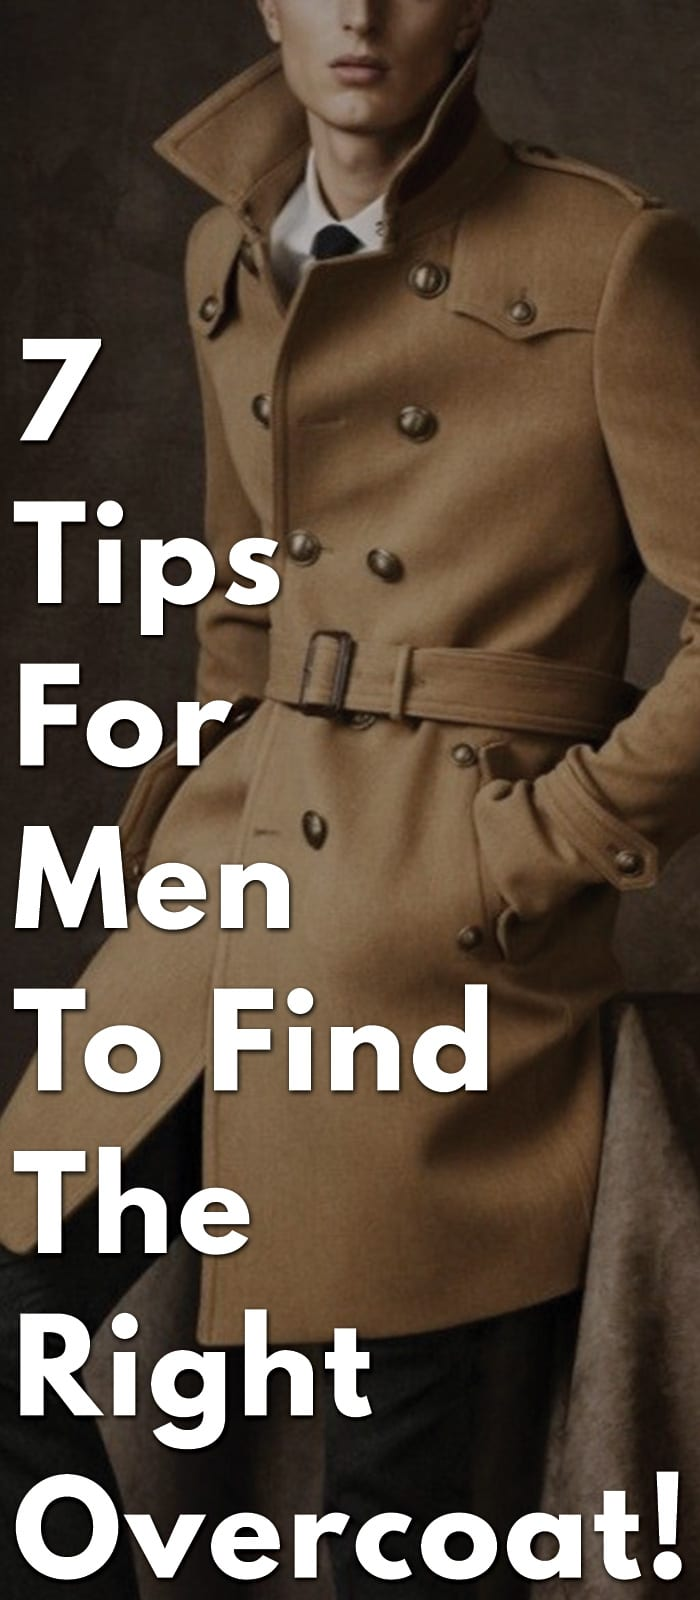 7-Tips-For-Men-To-Find-The-Right-Overcoat!